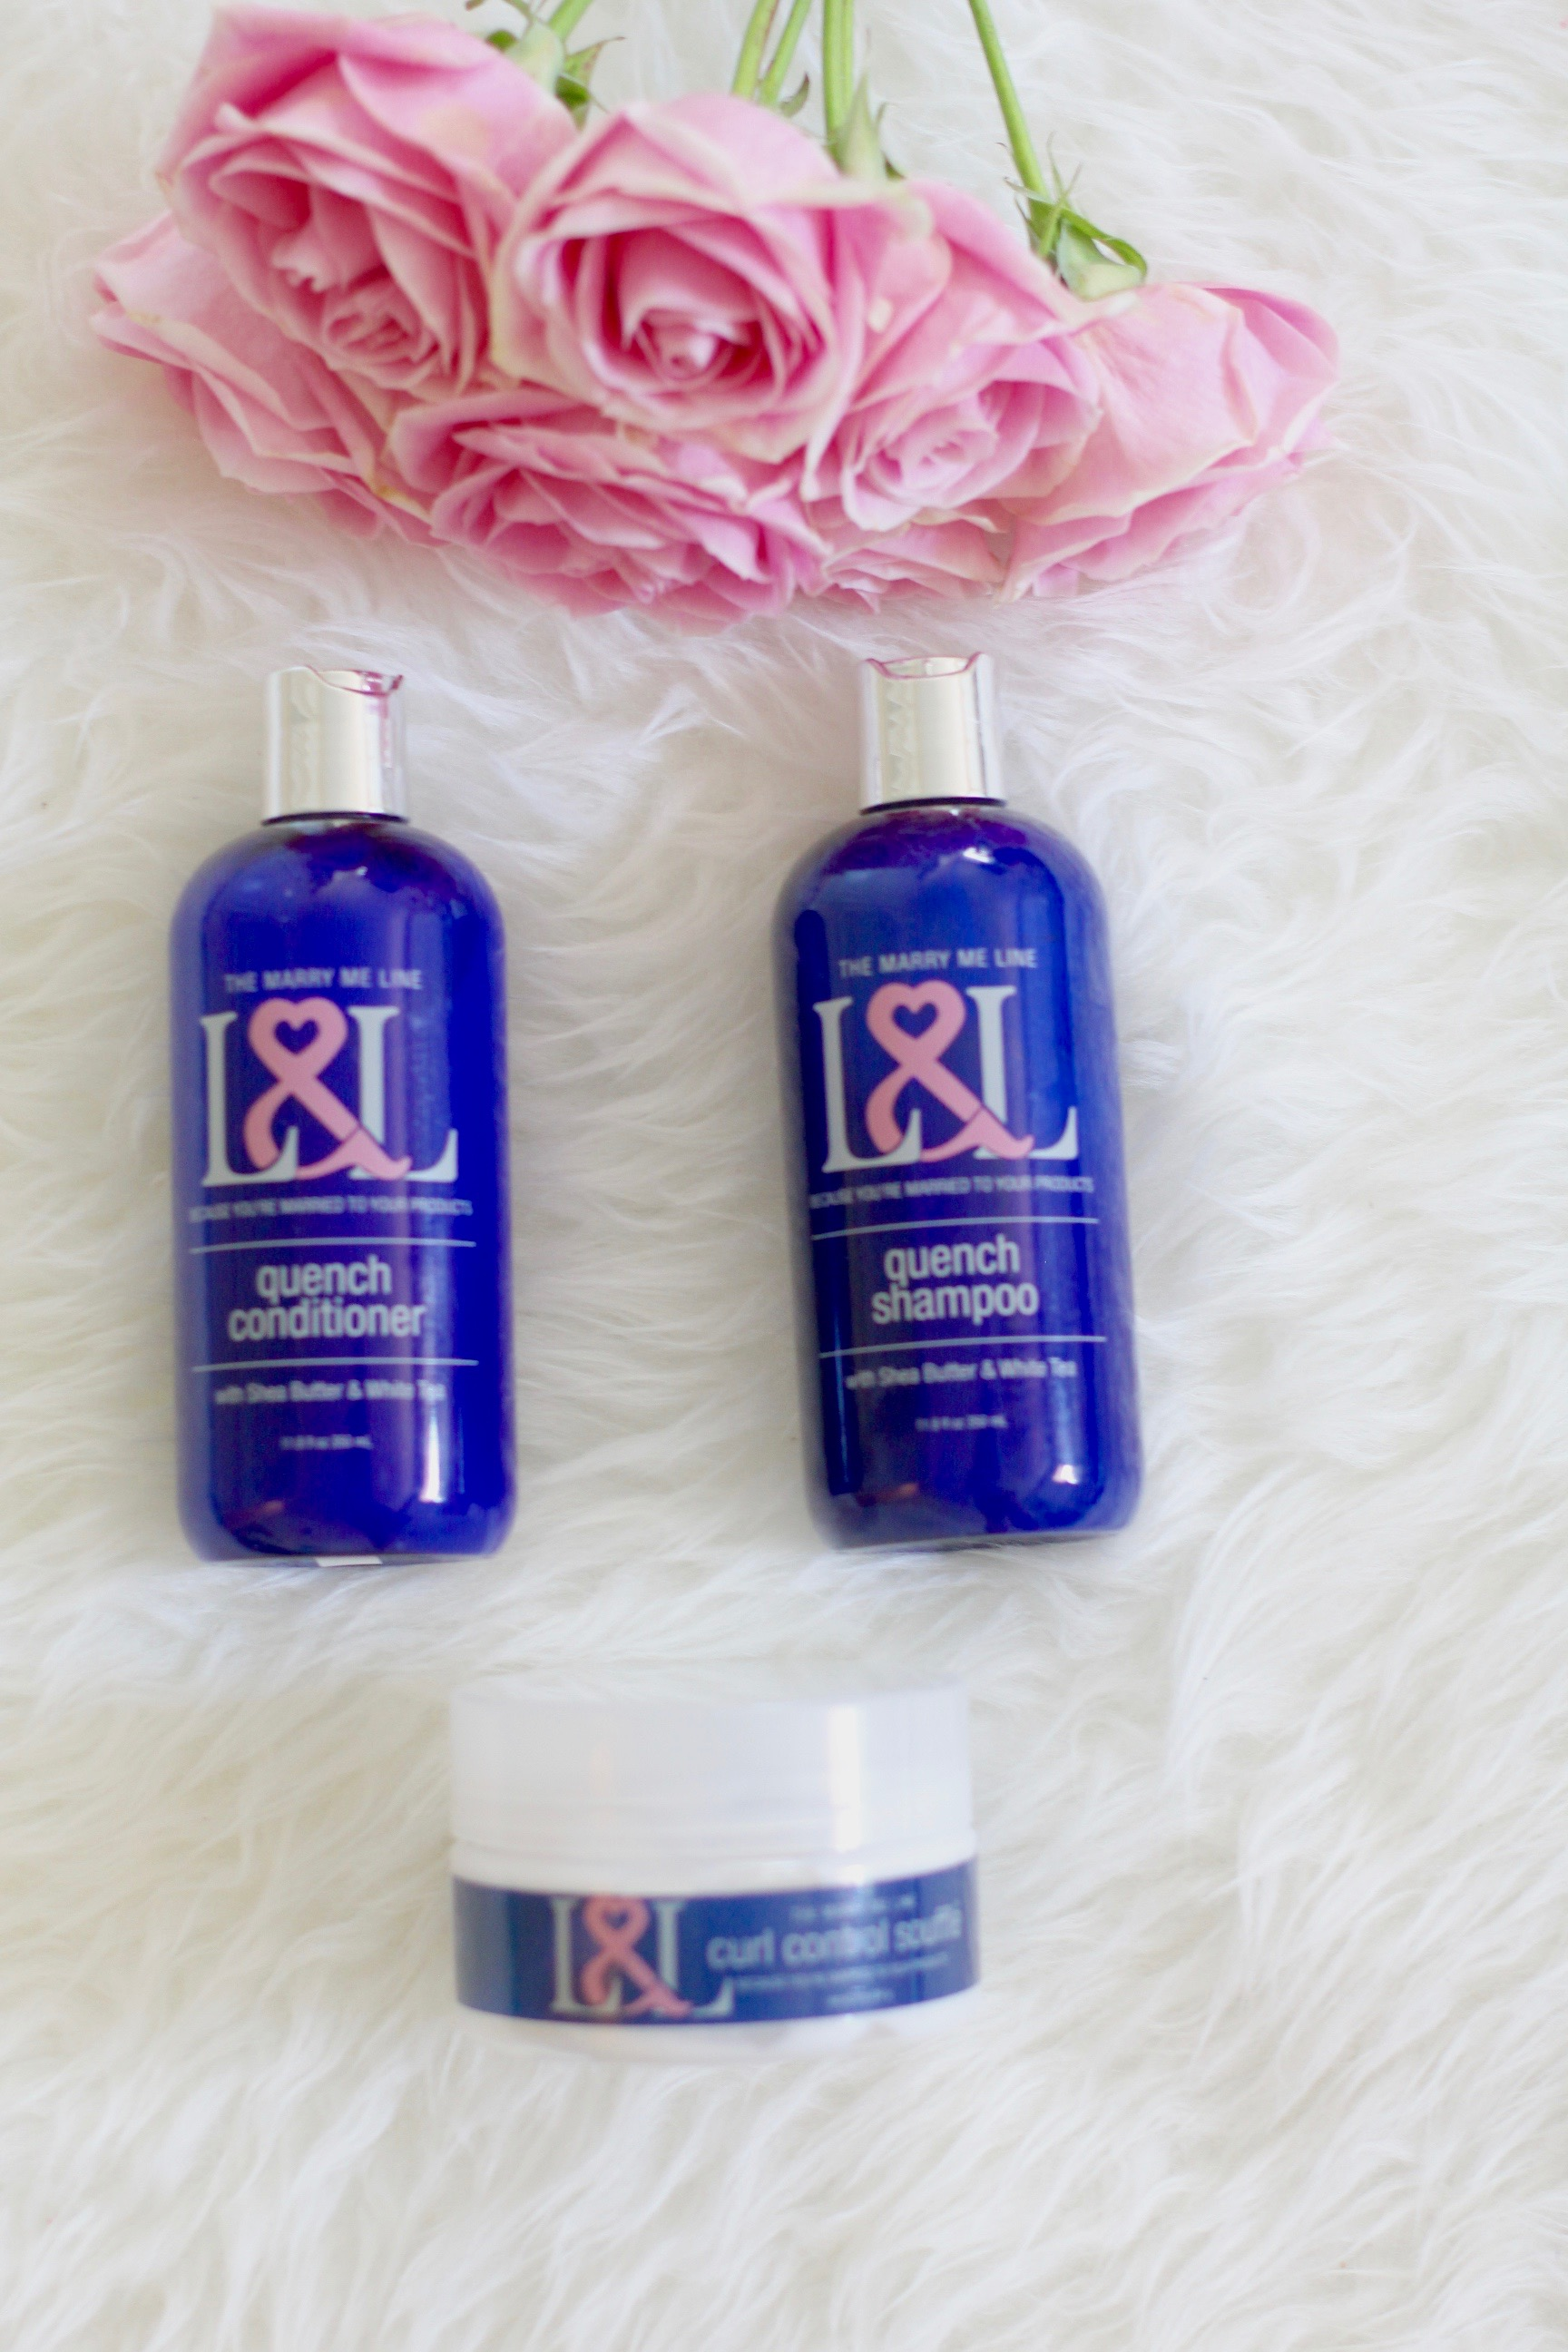 missyonmadison, melissa tierney, l and l hair products, cactus salon, vegan haircare, haircare, hairstyle, beauty blogger, beauty blog, hair trends, hair dresser, vegan products, shampoo and conditioner,